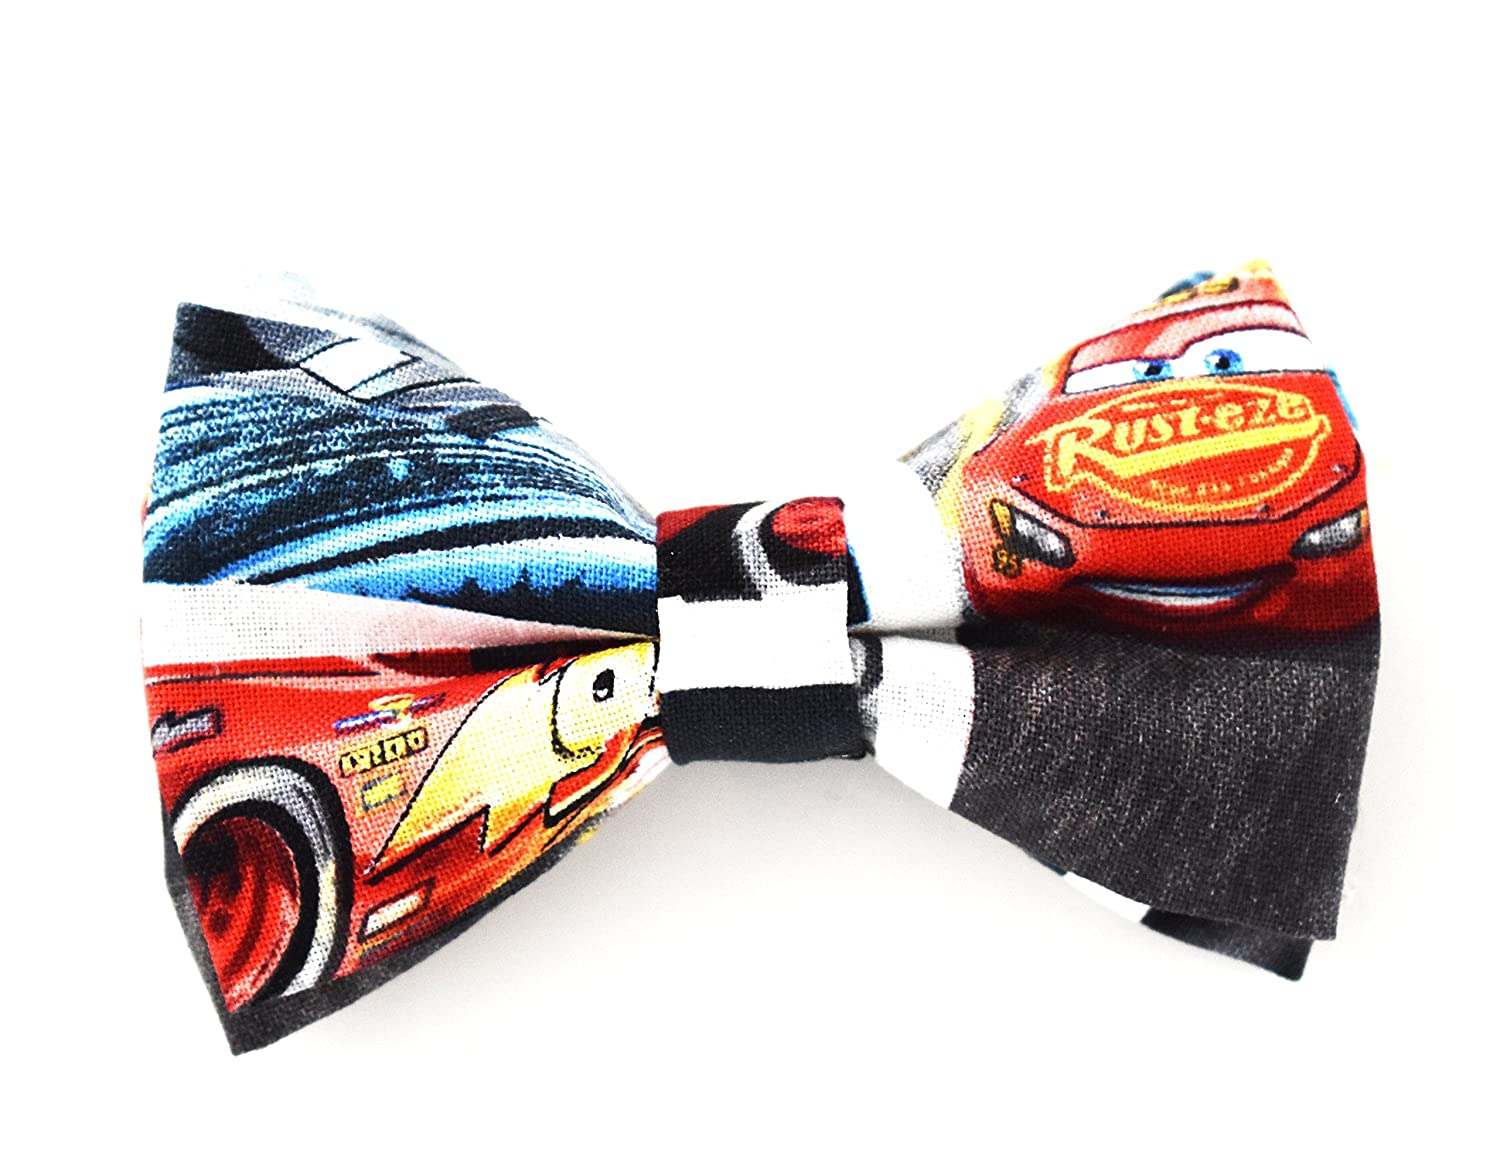 Disney Cars Lightning McQueen Bow Tie Clip On Fits Baby Toddler Boy Handmade (One Size Fits All) - by Blossom Design